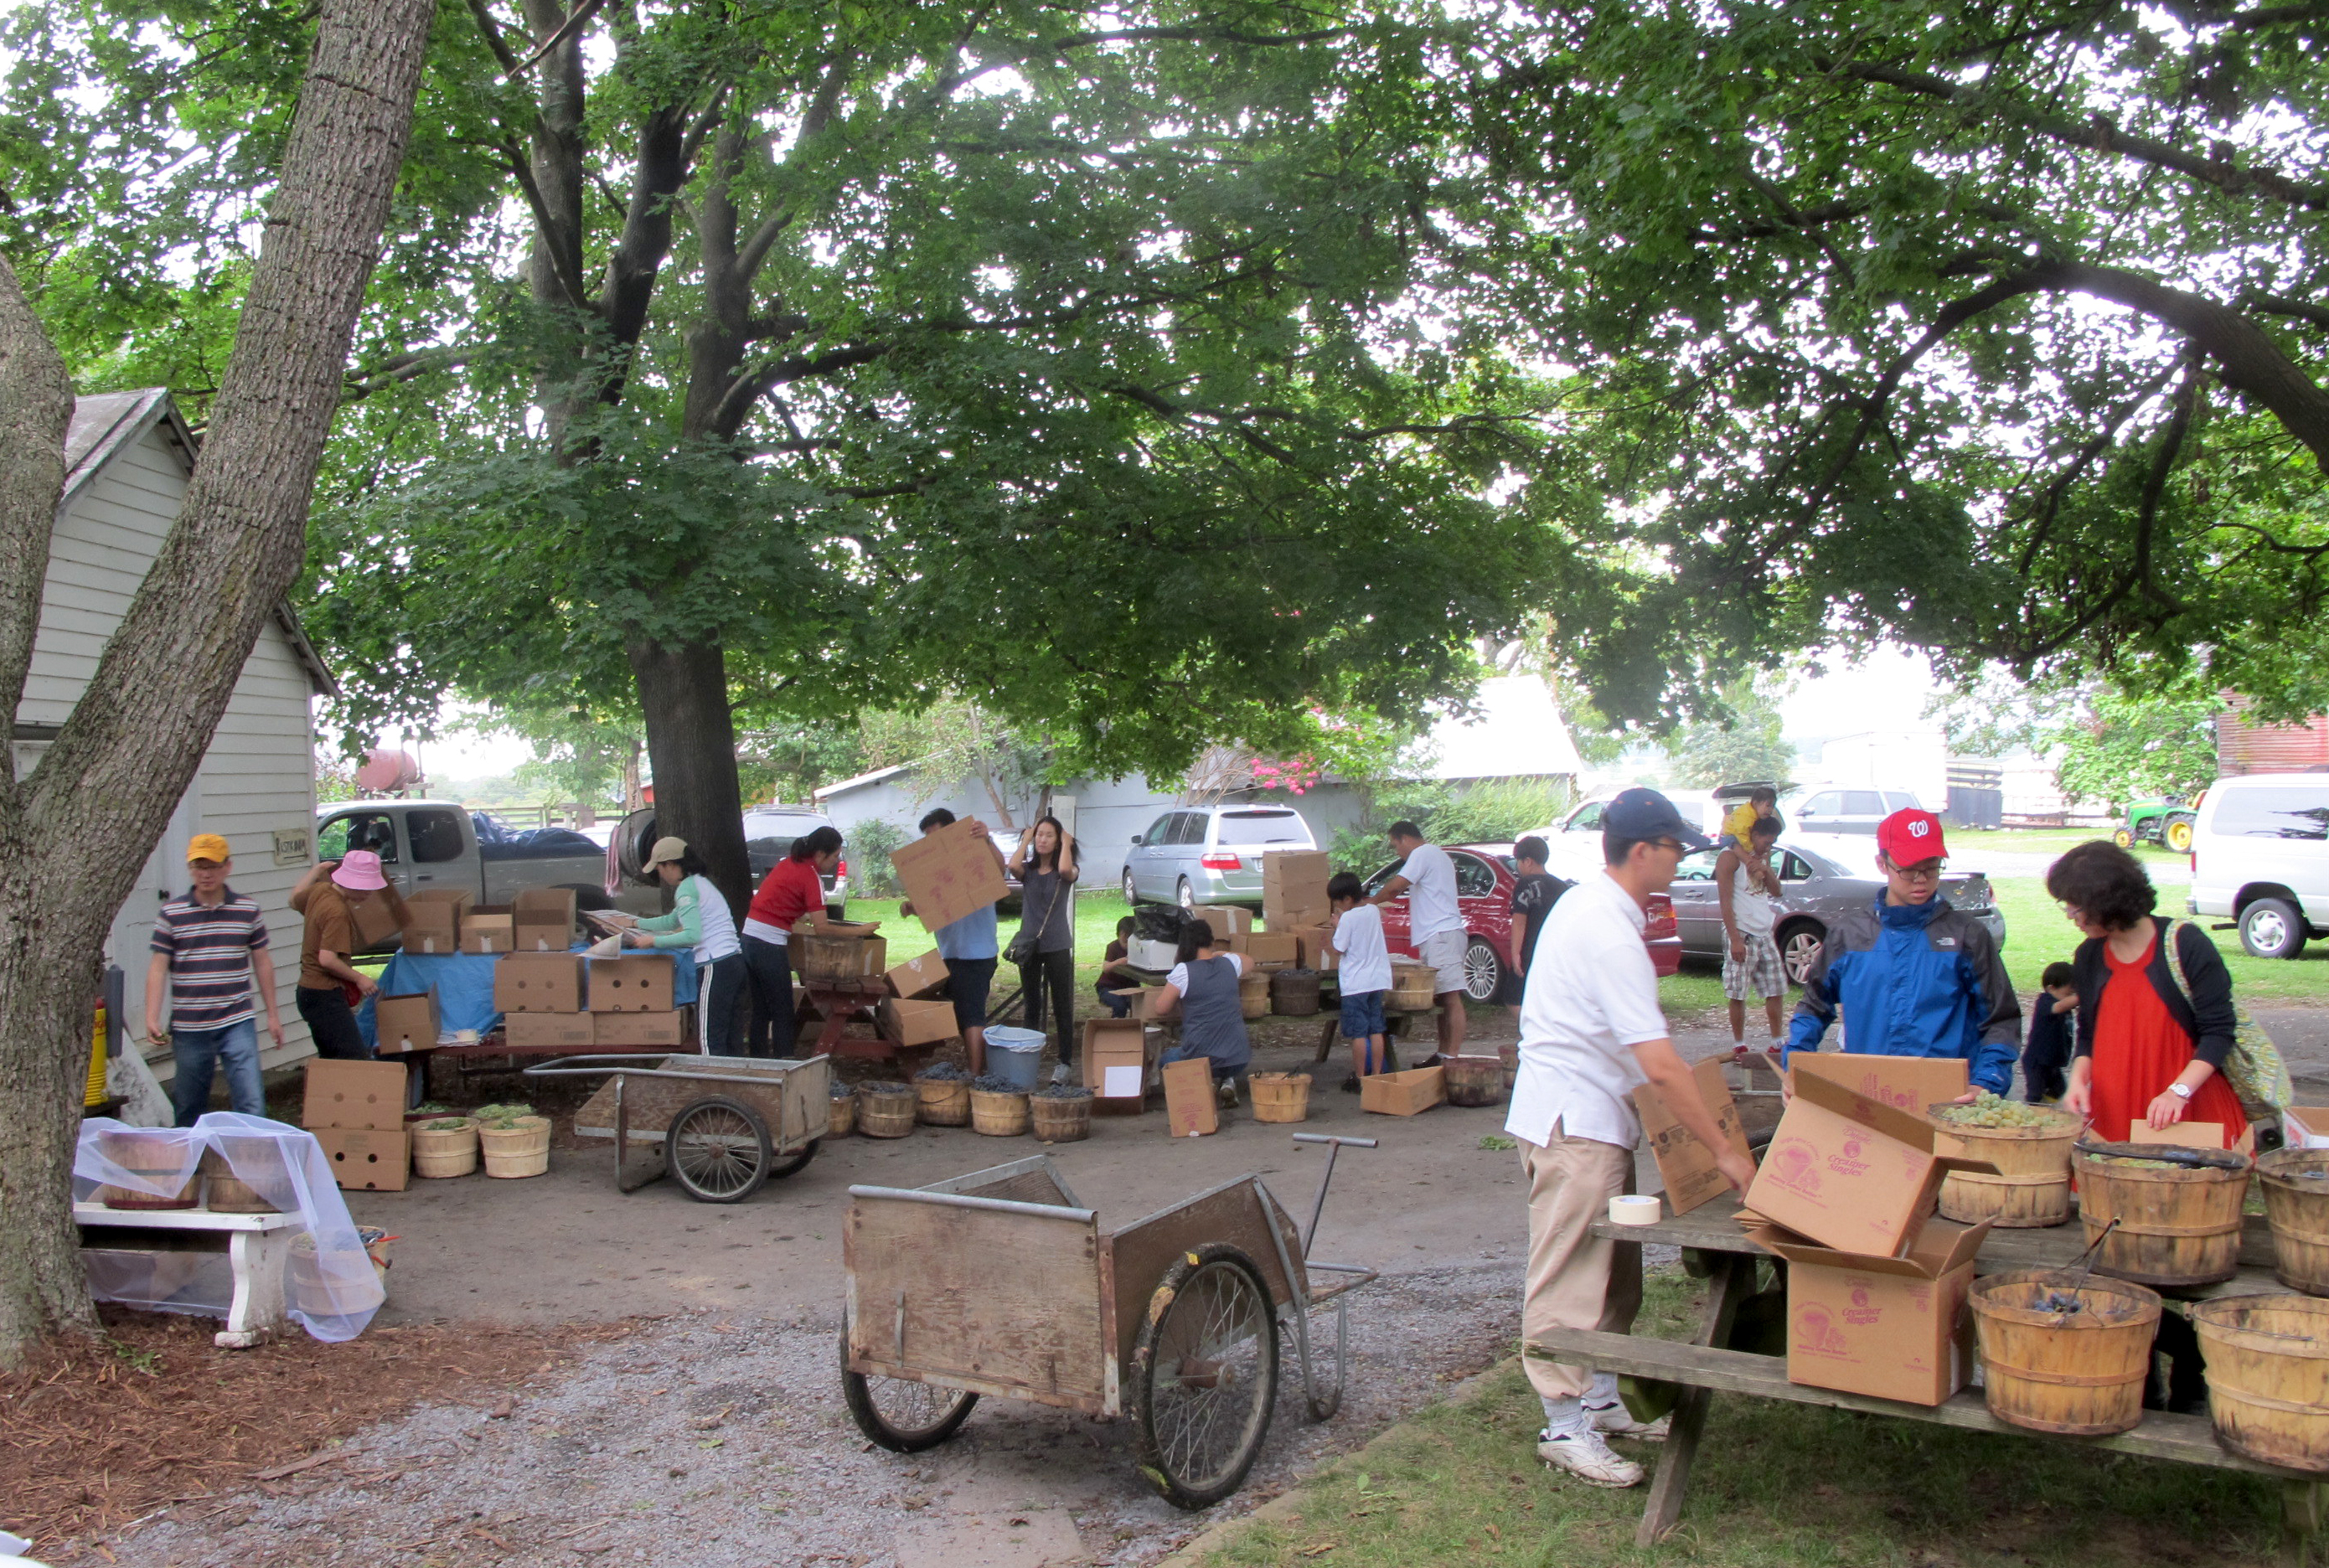 A busy day Wenger Grapes' farm stand where Pick Your Own customers transfer their grapes from baskets into boxes. Gardenway carts are used to haul haul baskets to and from the field.